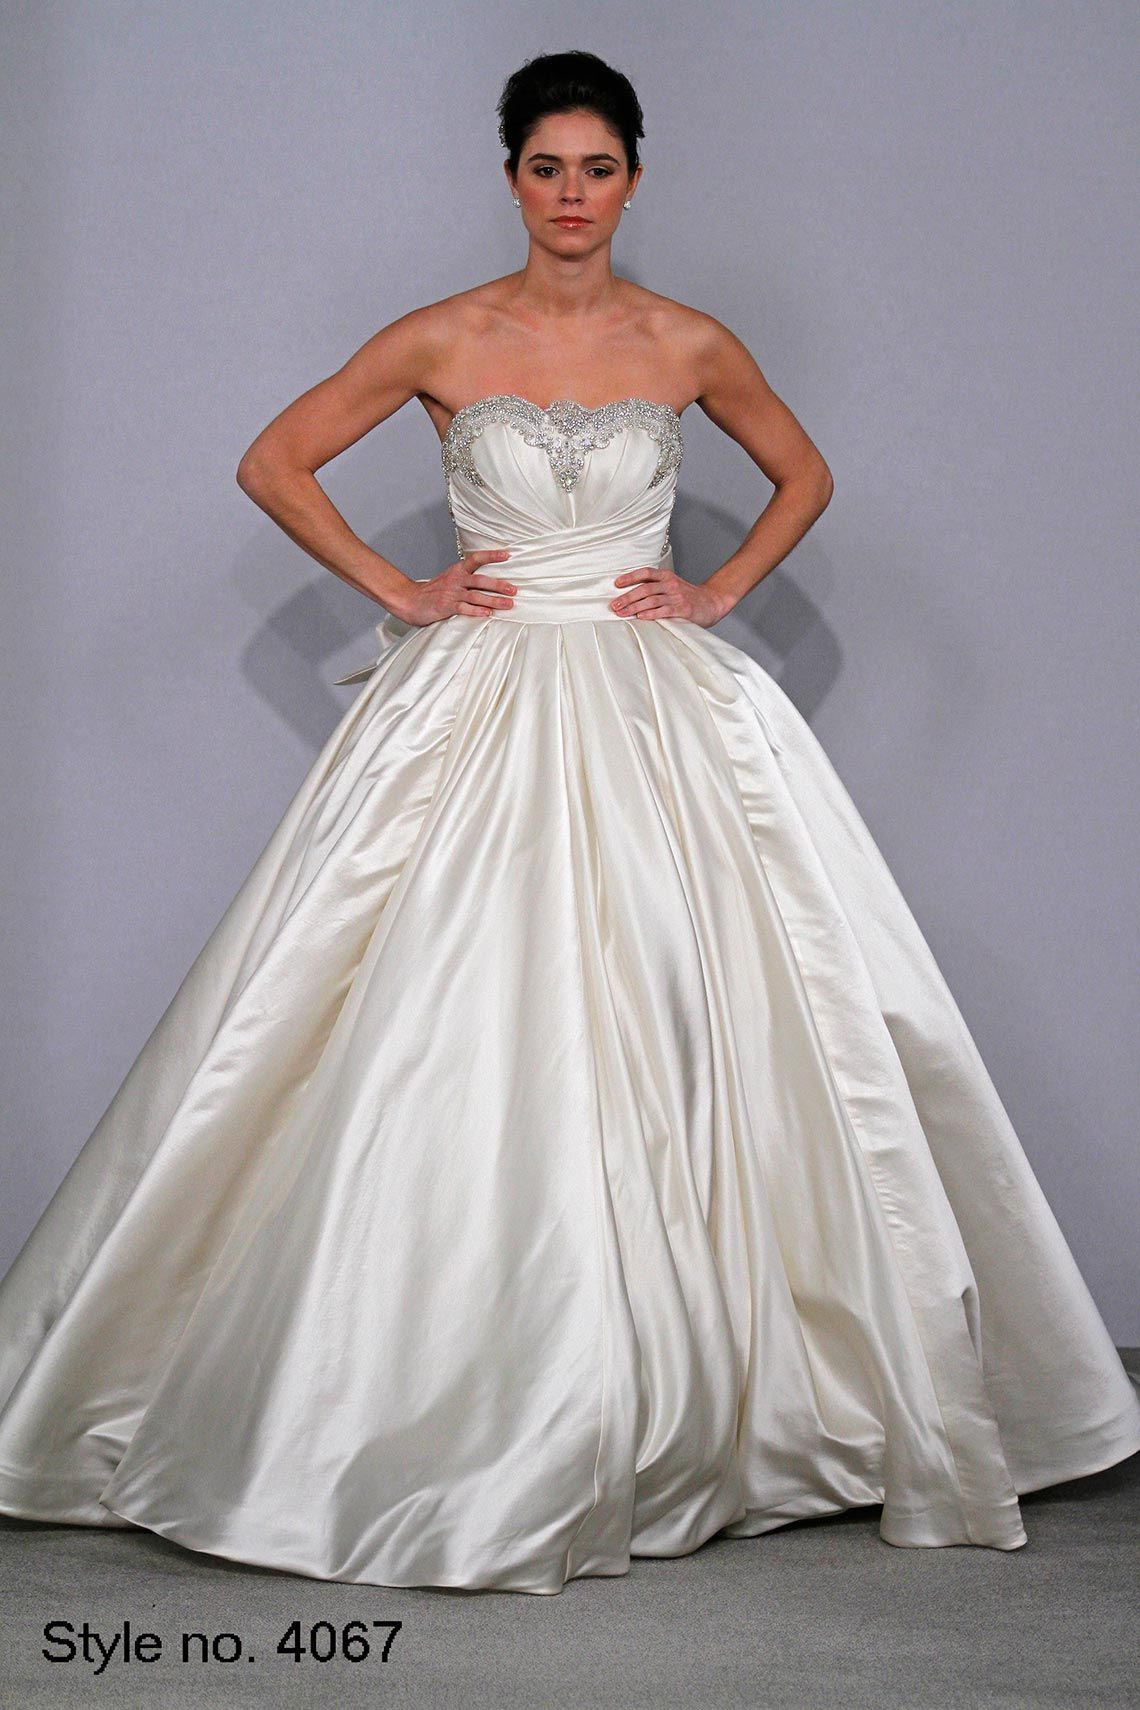 Beautiful Pnina Tornai bridal gown Style no. 4067 | Bridal Gowns ...